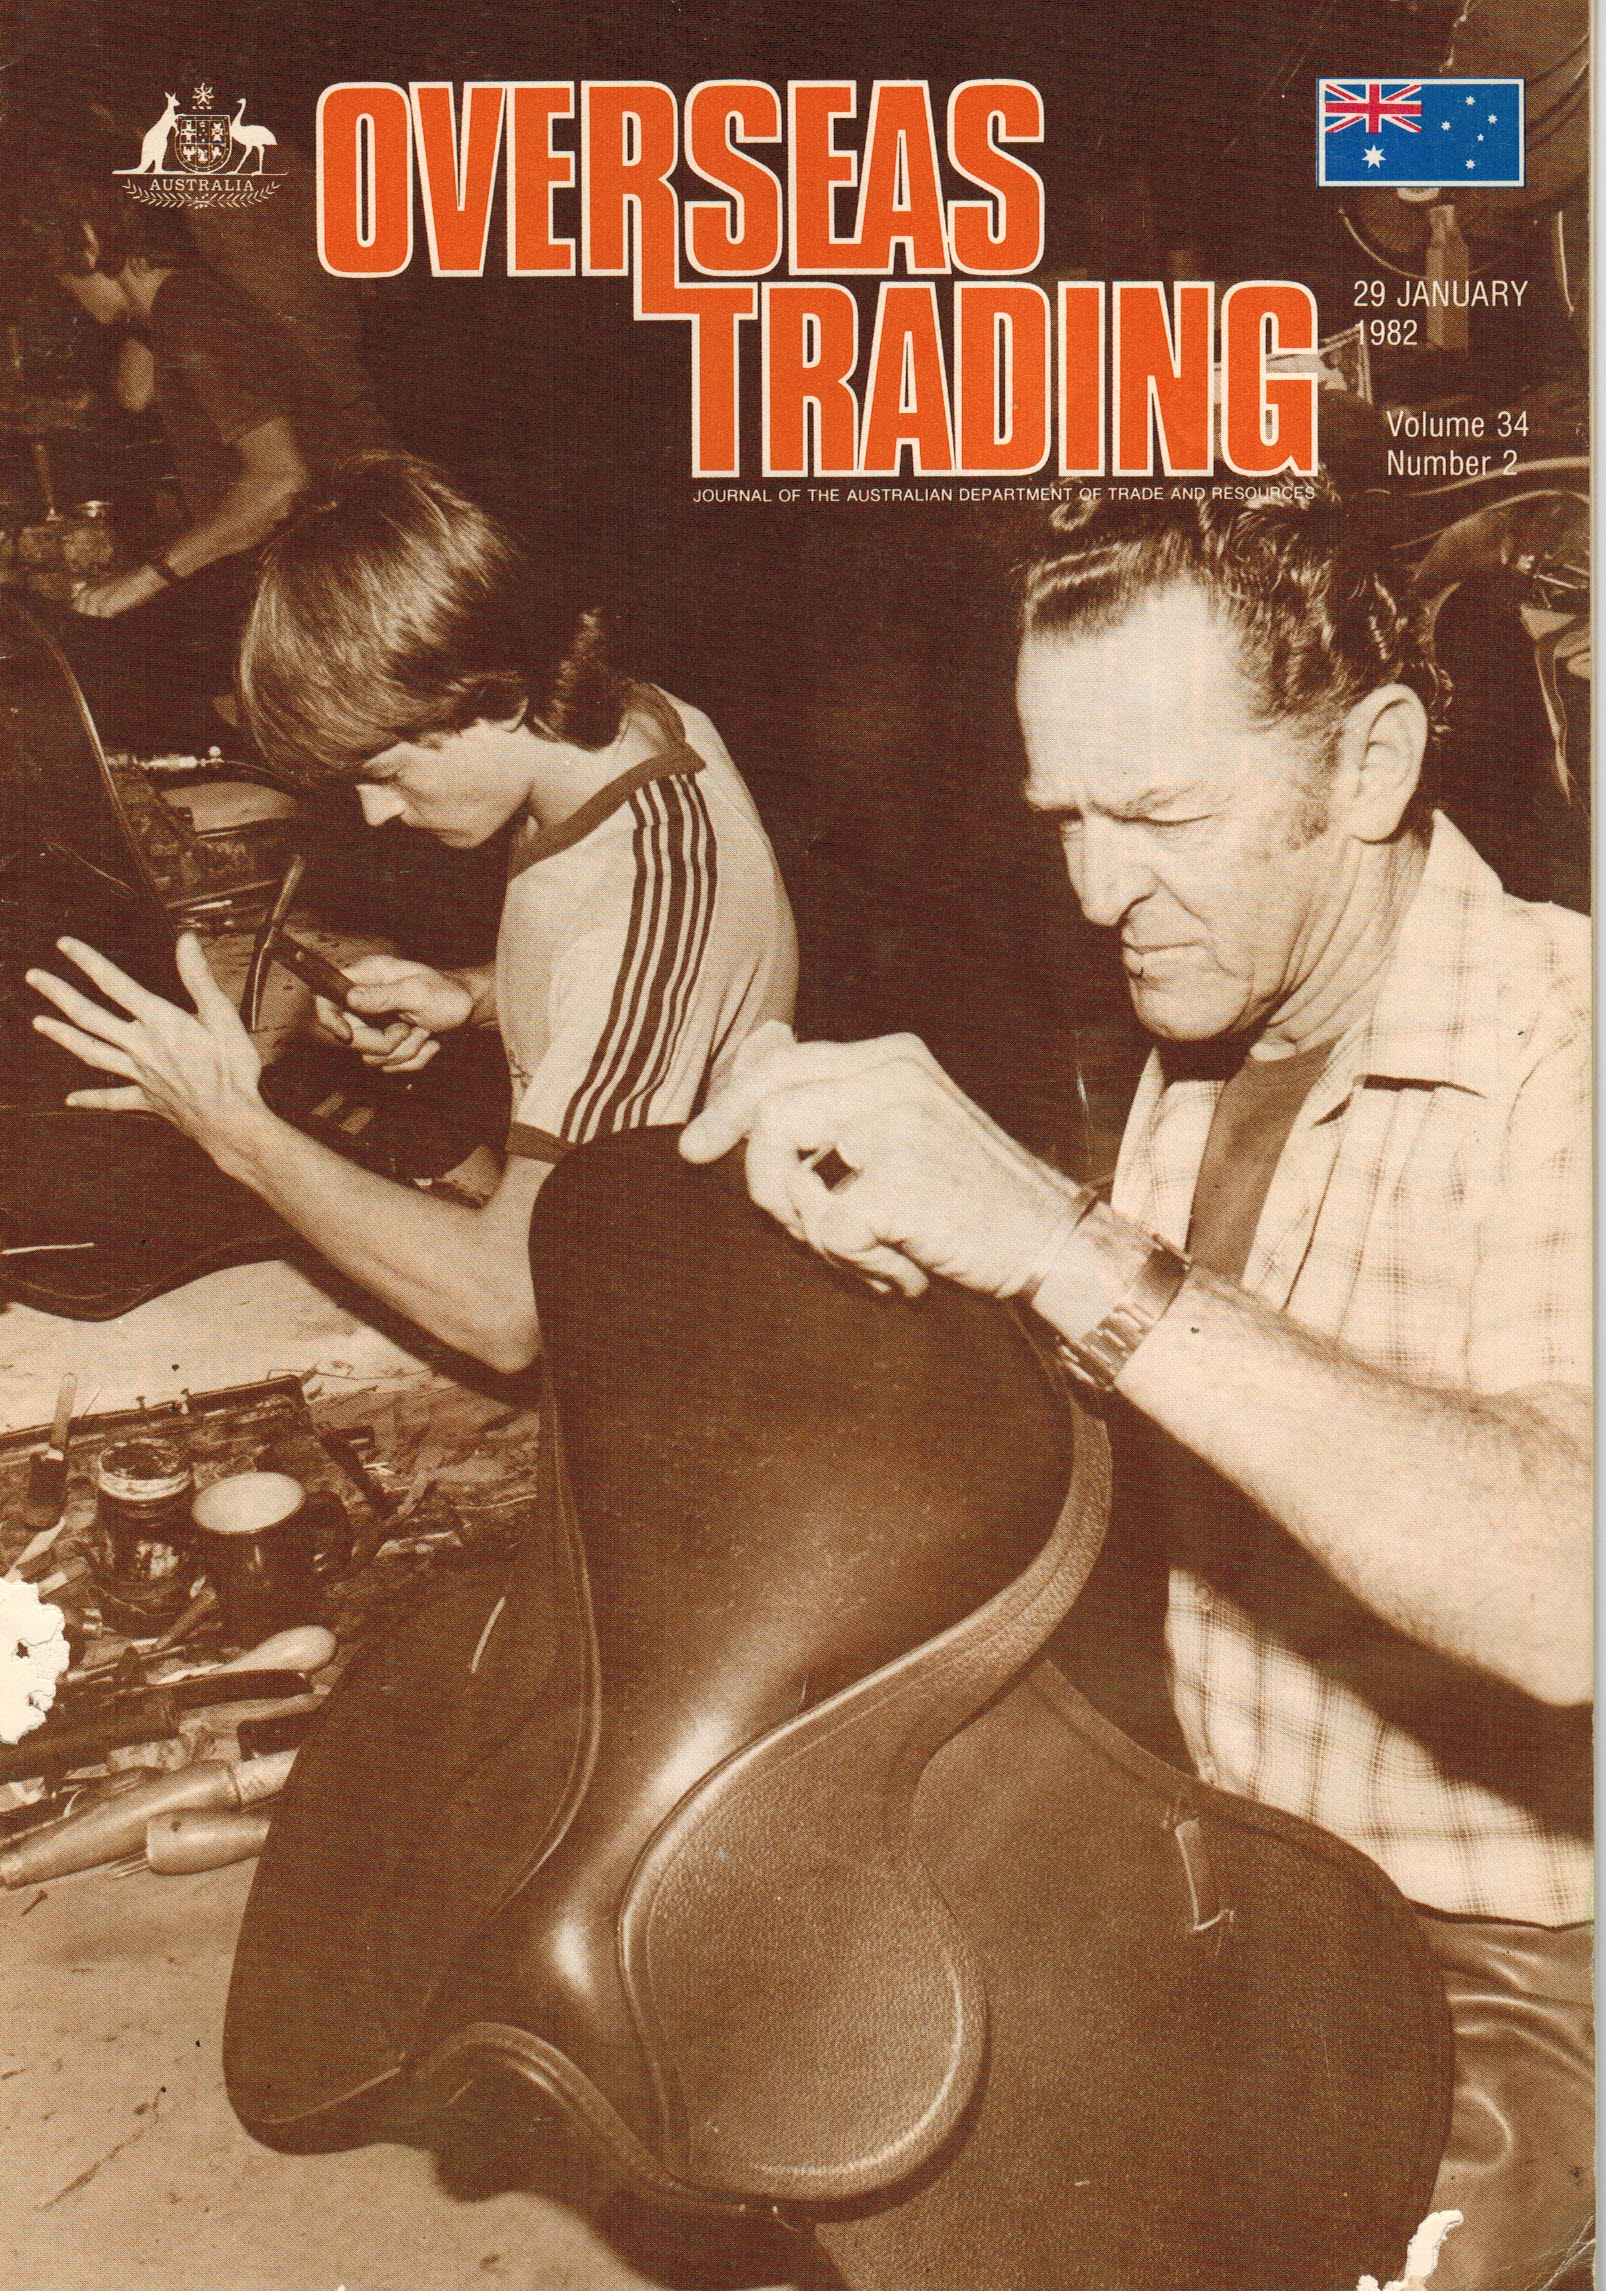 Syd Hill Saddlers on the cover of 'Overseas Trading'